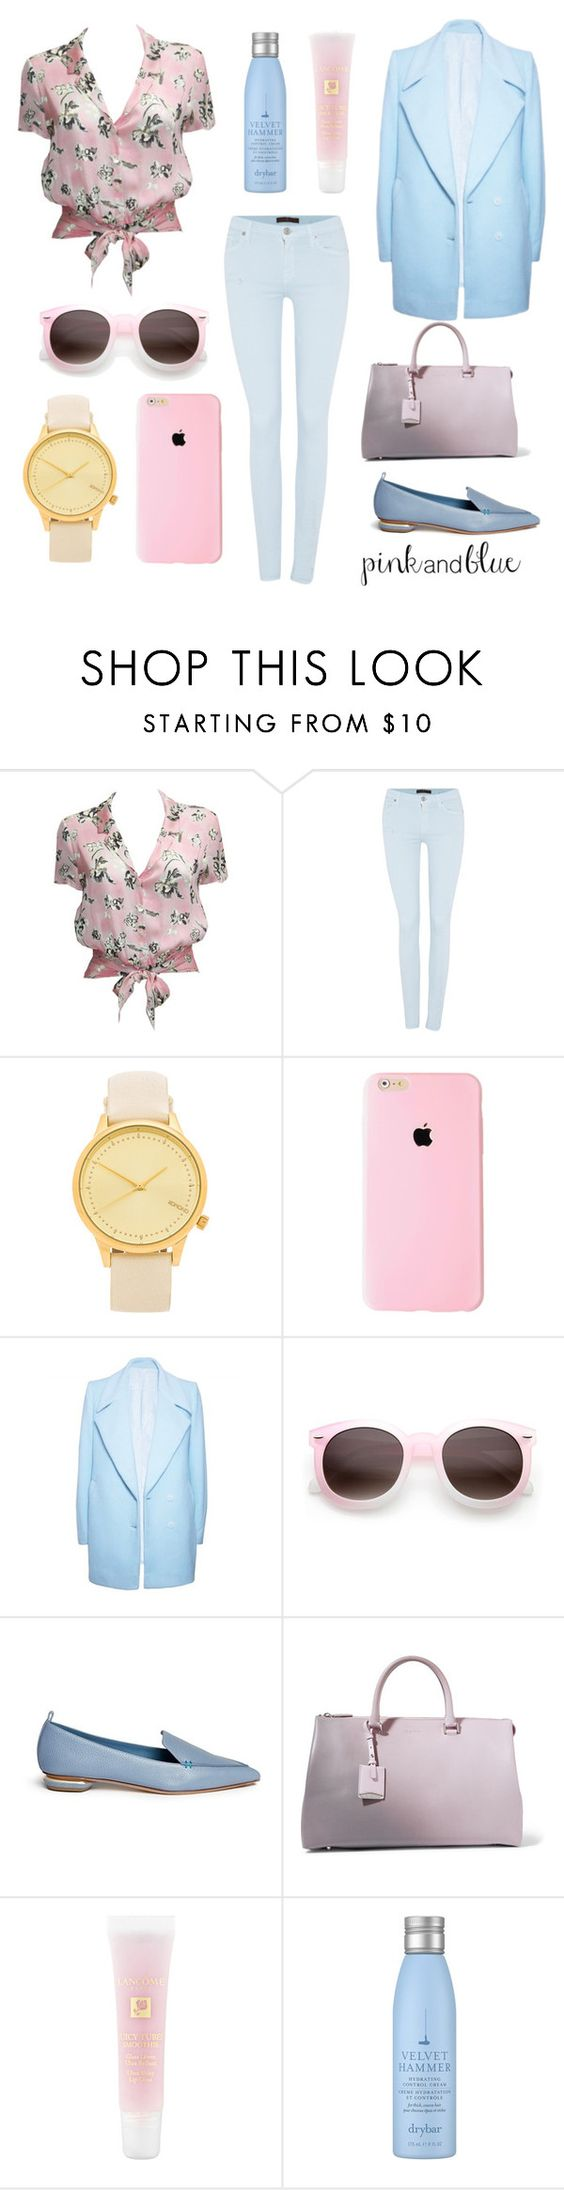 """pink and blue"" by gemmabroomx ❤ liked on Polyvore featuring Karl Lagerfeld, 7 For All Mankind, Komono, FAIR+true, Nicholas Kirkwood, Jil Sander, Lancôme, Drybar, women's clothing and women"